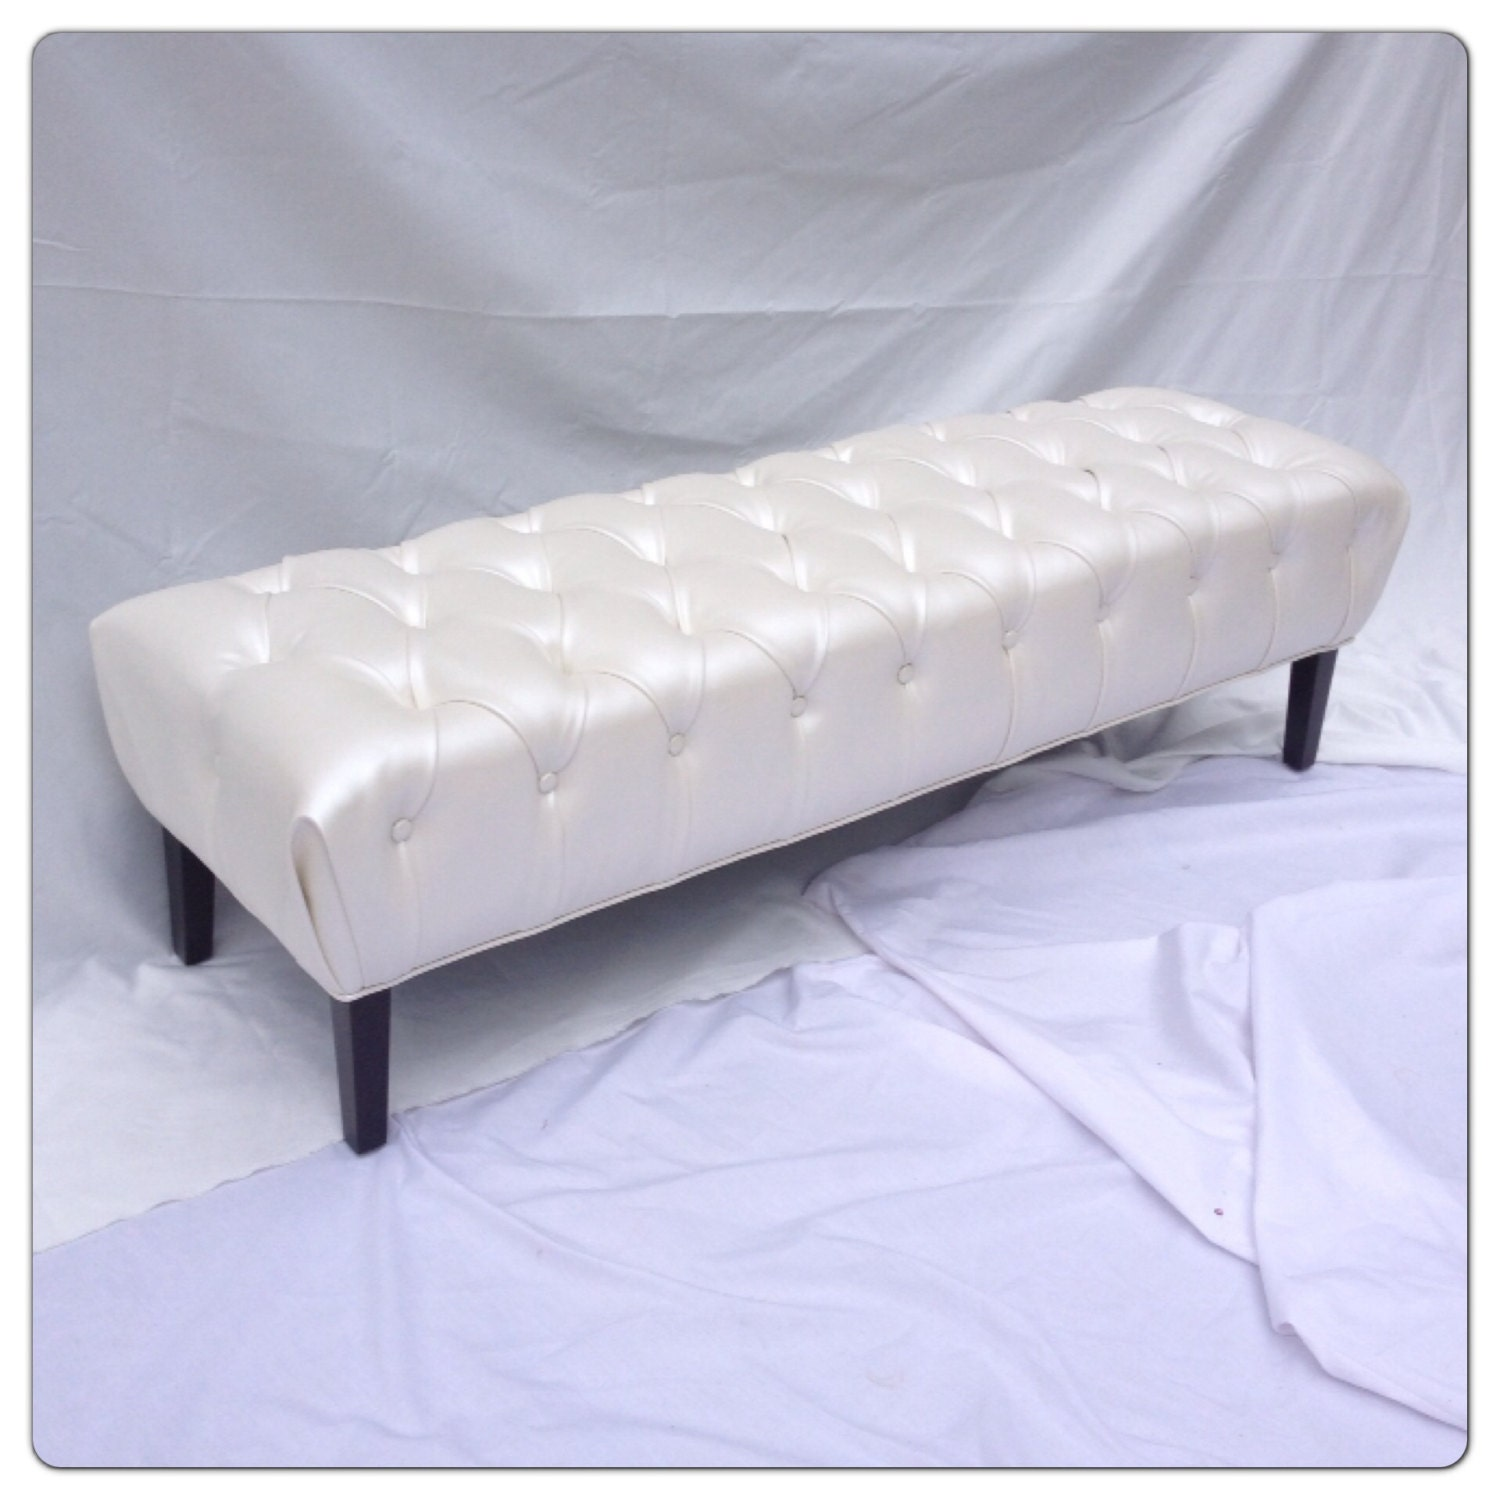 Tufted Bench Upholstered Bench Faux Leather Ivory Bench Off